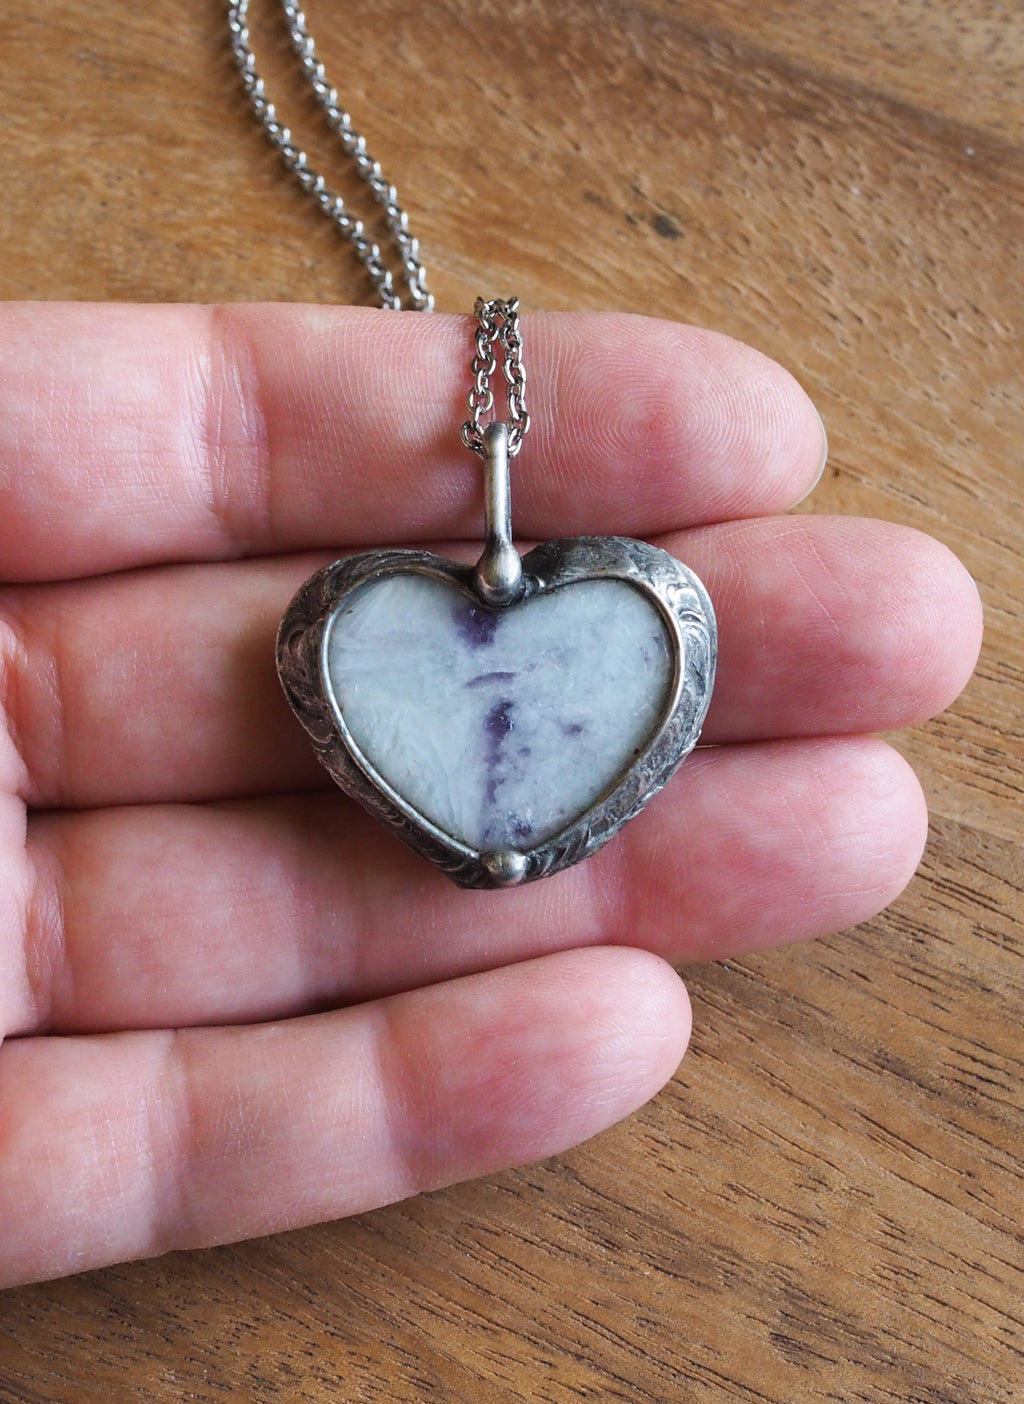 purple and sparkly white heart shaped healing crystal talisman necklace in palm of hand